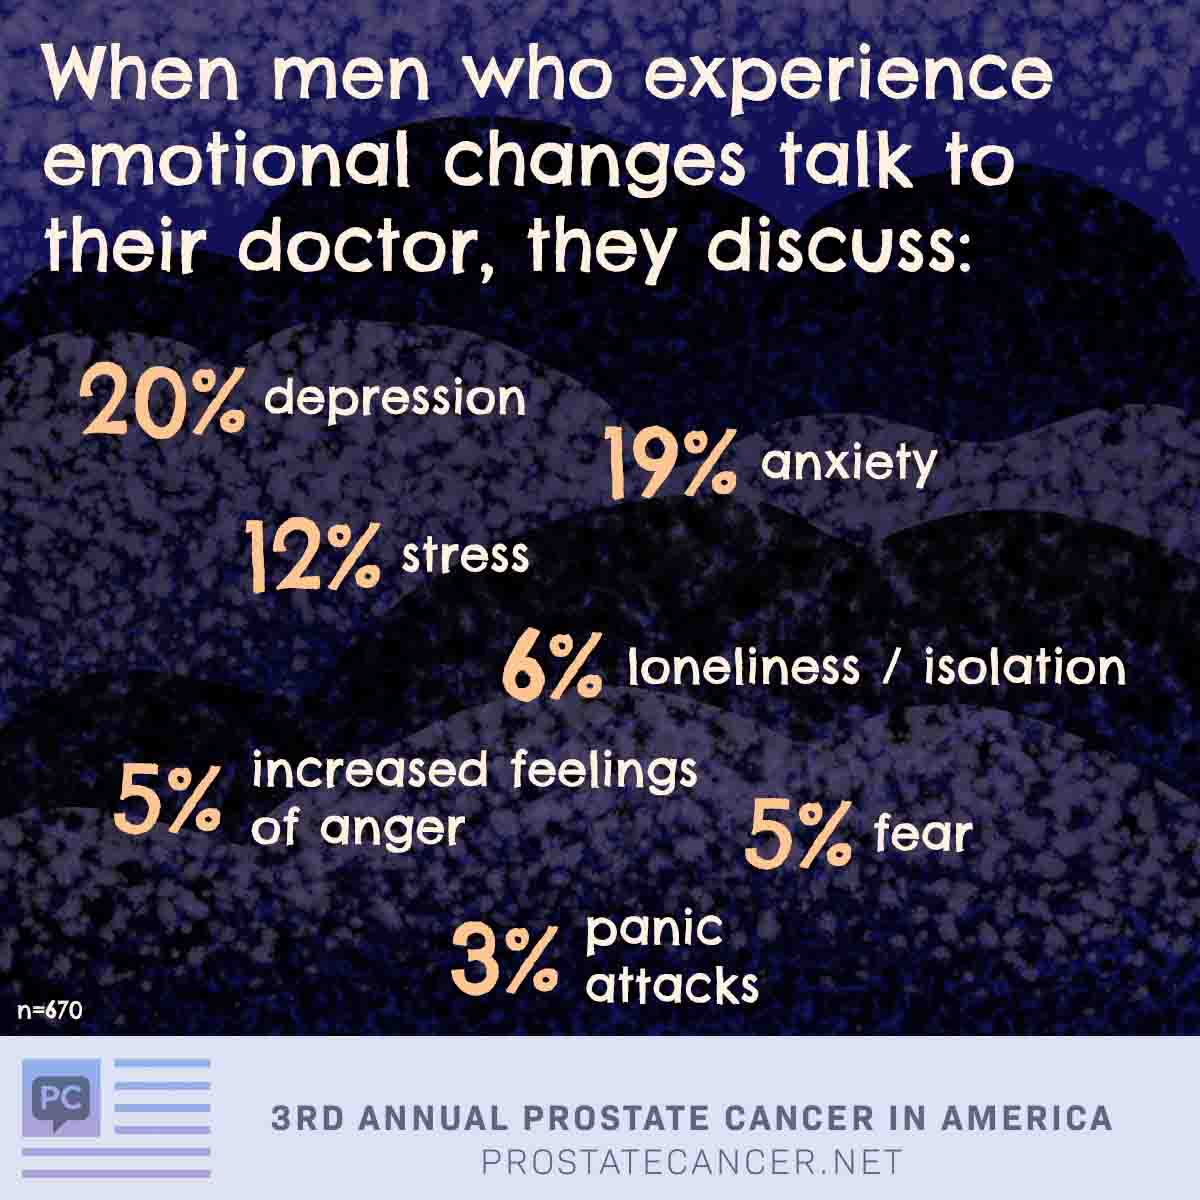 When men who experience emotional changes talk to their doctor, they discuss depression 20%, anxiety 19%, stress 12%, loneliness/isolation 6%, fear 5%, increased feelings of anger 5%, panic attacks 3%.